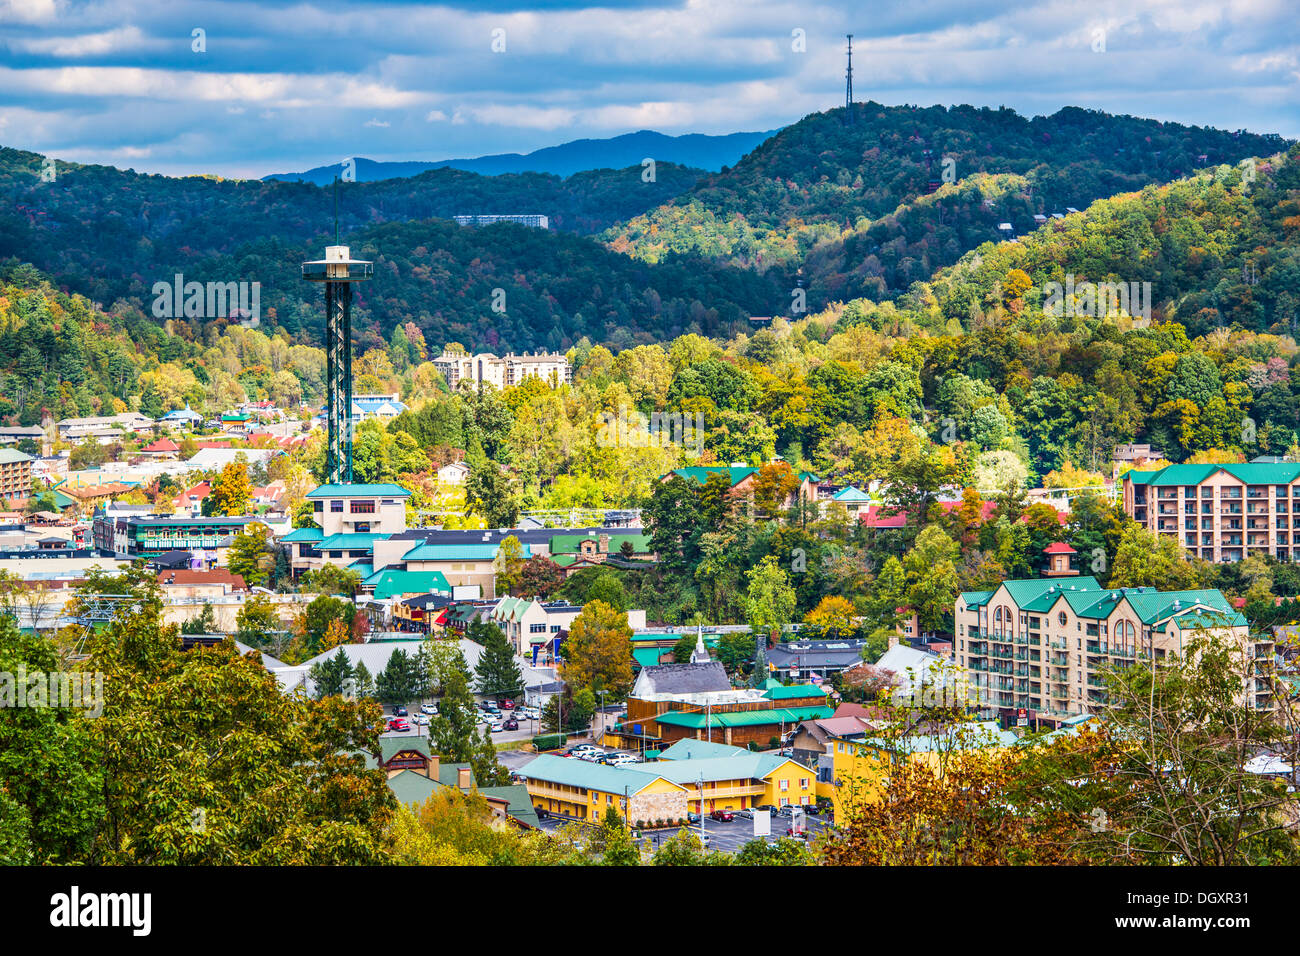 Gatlinburg, Tennessee nelle Smoky Mountains. Immagini Stock